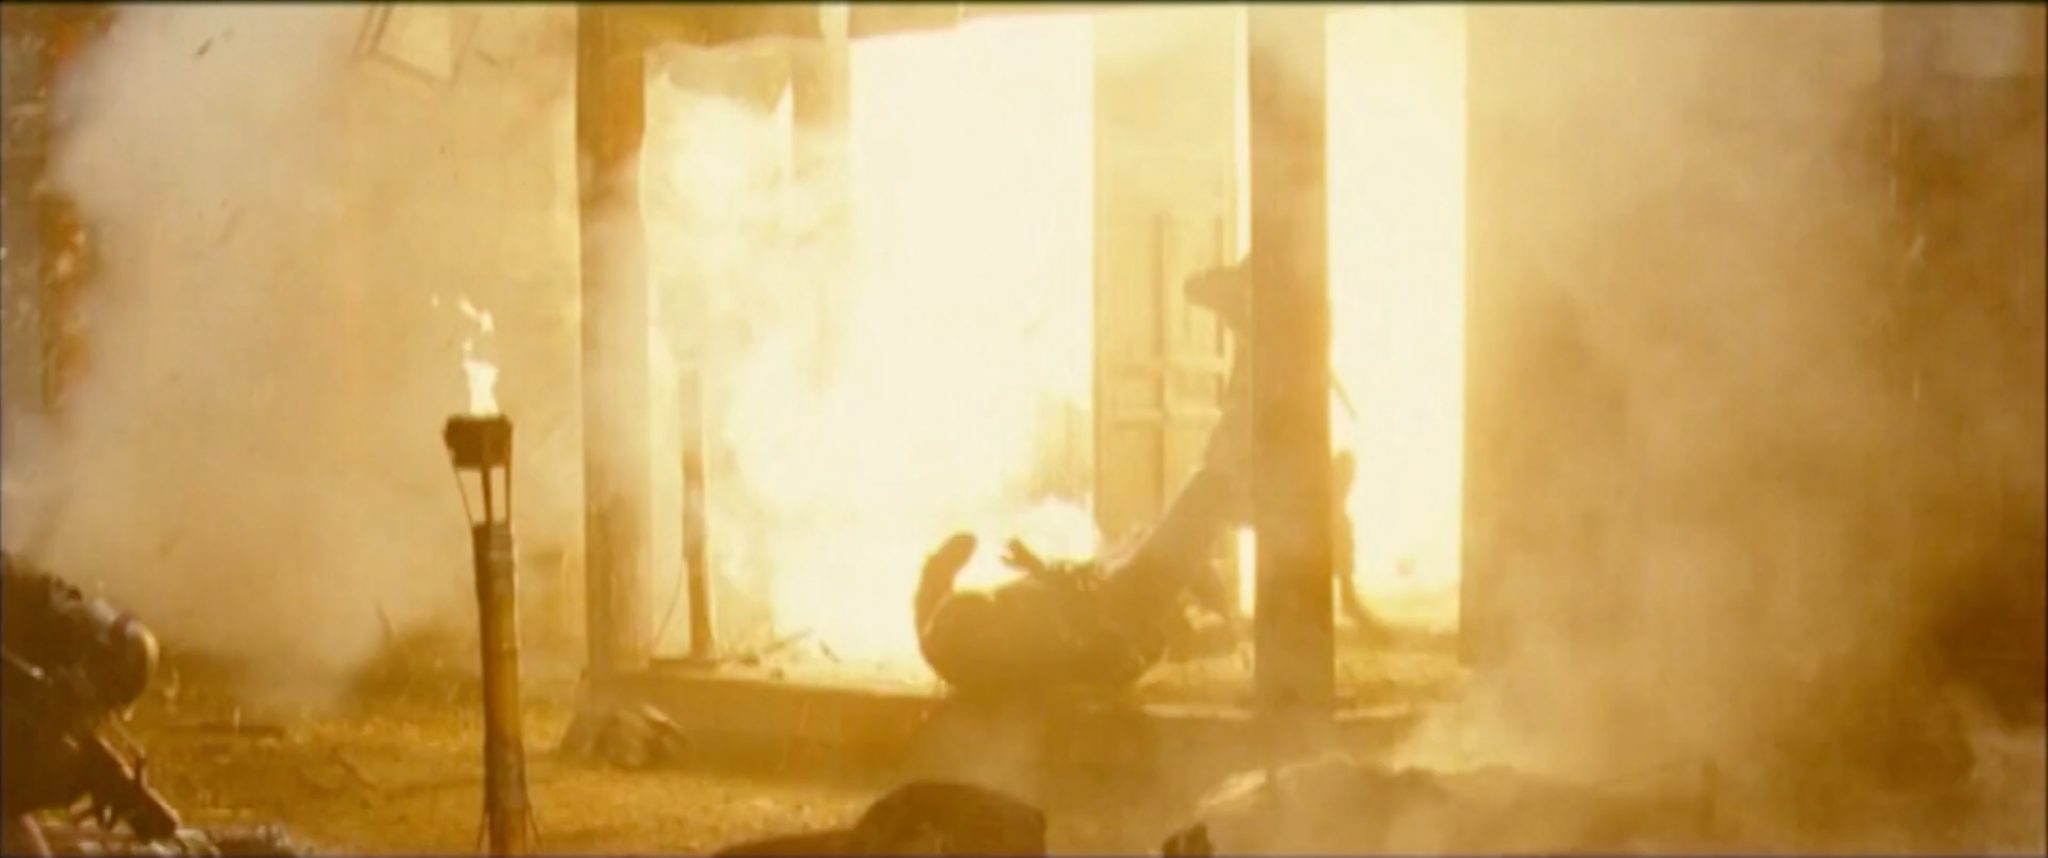 MG Action, Martin Goeres, Ninja Assassin, Stunt, Explosion, Fire, Movie